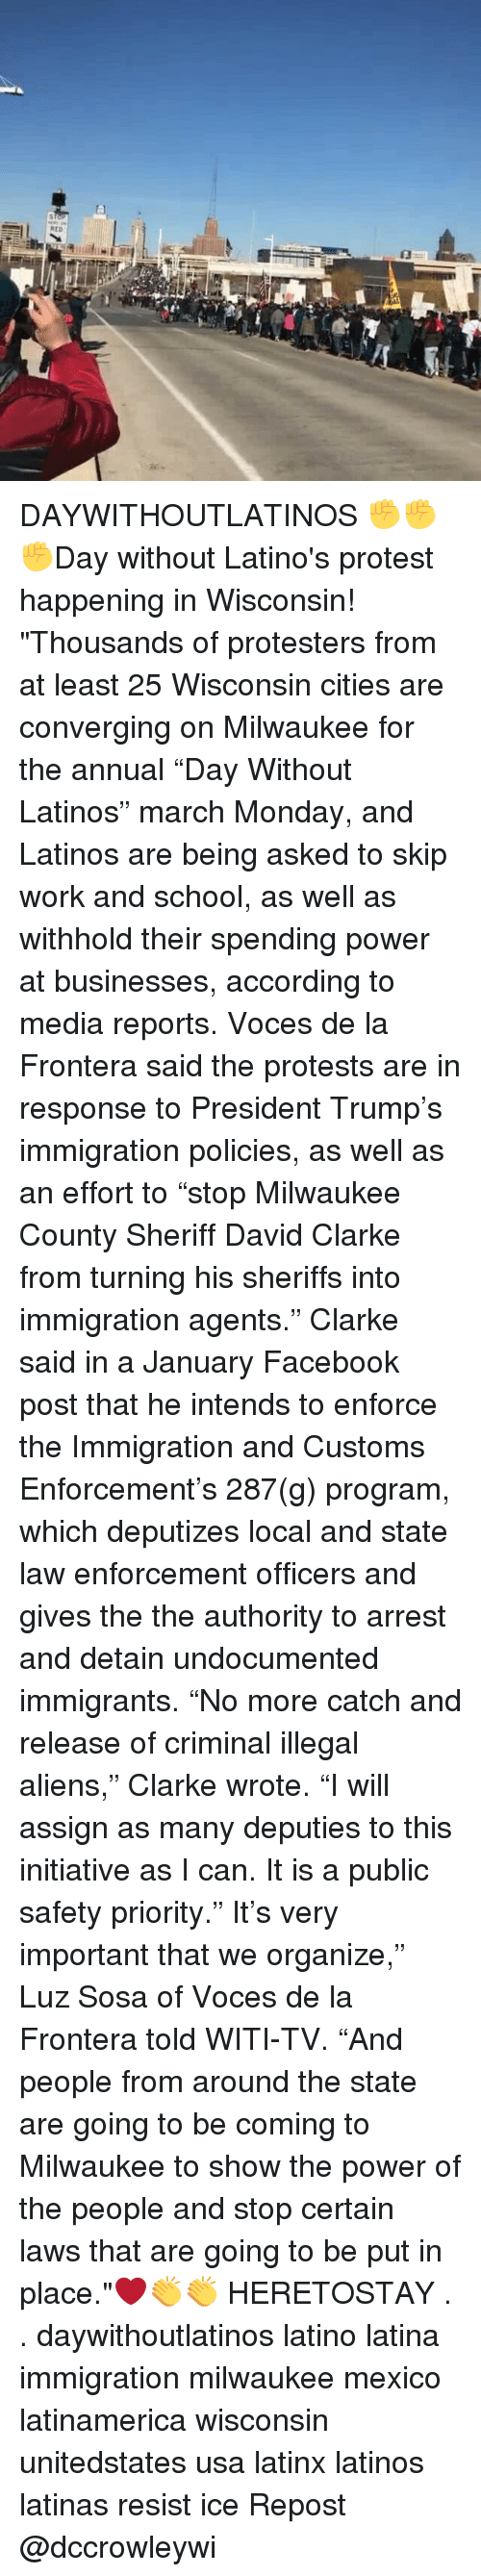 """Illegal Alien: RED DAYWITHOUTLATINOS ✊✊✊Day without Latino's protest happening in Wisconsin! """"Thousands of protesters from at least 25 Wisconsin cities are converging on Milwaukee for the annual """"Day Without Latinos"""" march Monday, and Latinos are being asked to skip work and school, as well as withhold their spending power at businesses, according to media reports. Voces de la Frontera said the protests are in response to President Trump's immigration policies, as well as an effort to """"stop Milwaukee County Sheriff David Clarke from turning his sheriffs into immigration agents."""" Clarke said in a January Facebook post that he intends to enforce the Immigration and Customs Enforcement's 287(g) program, which deputizes local and state law enforcement officers and gives the the authority to arrest and detain undocumented immigrants. """"No more catch and release of criminal illegal aliens,"""" Clarke wrote. """"I will assign as many deputies to this initiative as I can. It is a public safety priority."""" It's very important that we organize,"""" Luz Sosa of Voces de la Frontera told WITI-TV. """"And people from around the state are going to be coming to Milwaukee to show the power of the people and stop certain laws that are going to be put in place.""""❤👏👏 HERETOSTAY . . daywithoutlatinos latino latina immigration milwaukee mexico latinamerica wisconsin unitedstates usa latinx latinos latinas resist ice Repost @dccrowleywi"""